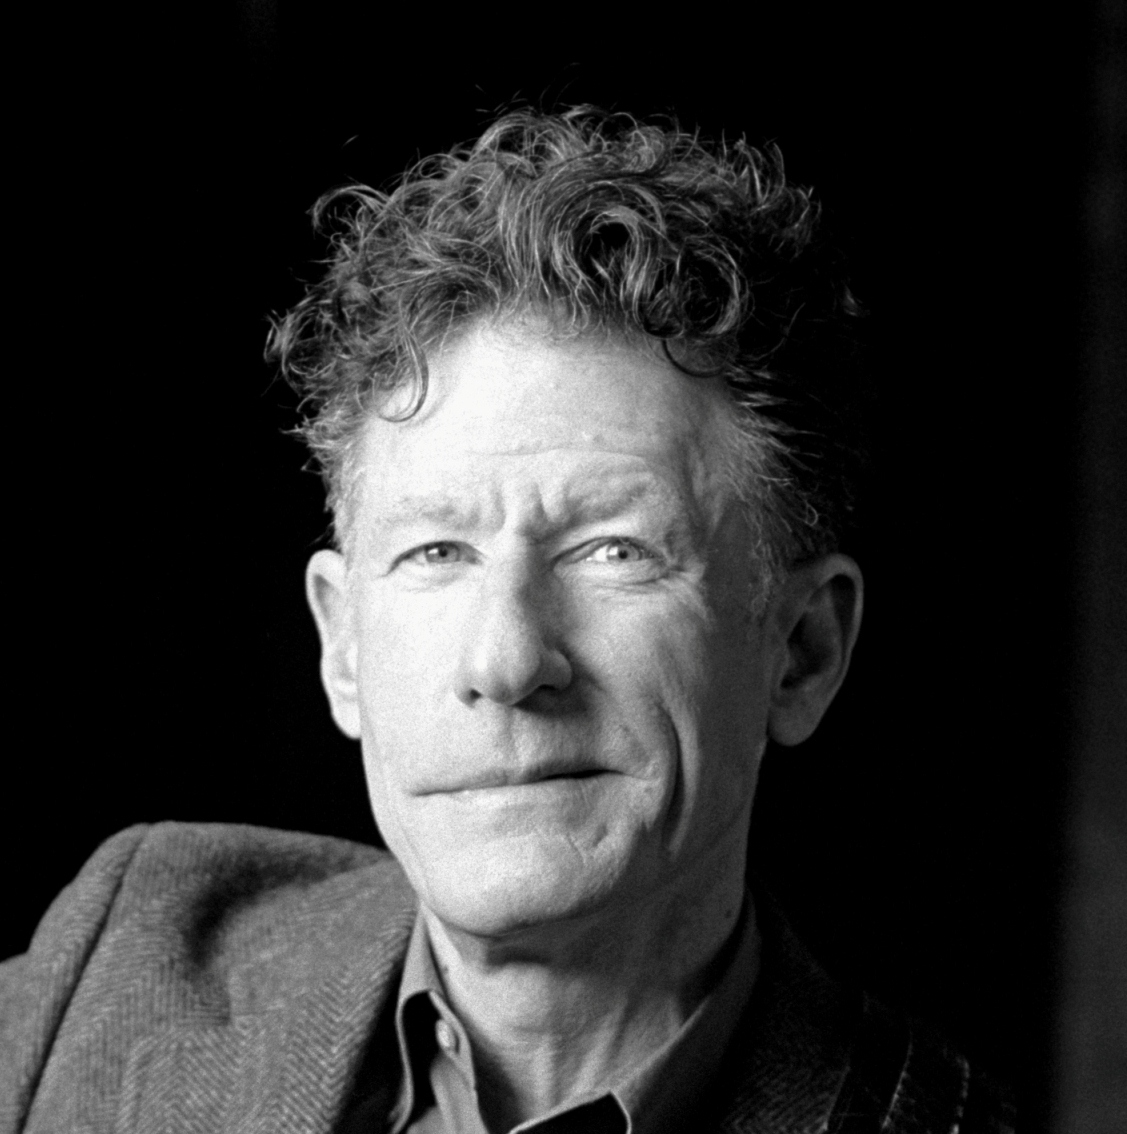 Lyle Lovett's Headshot